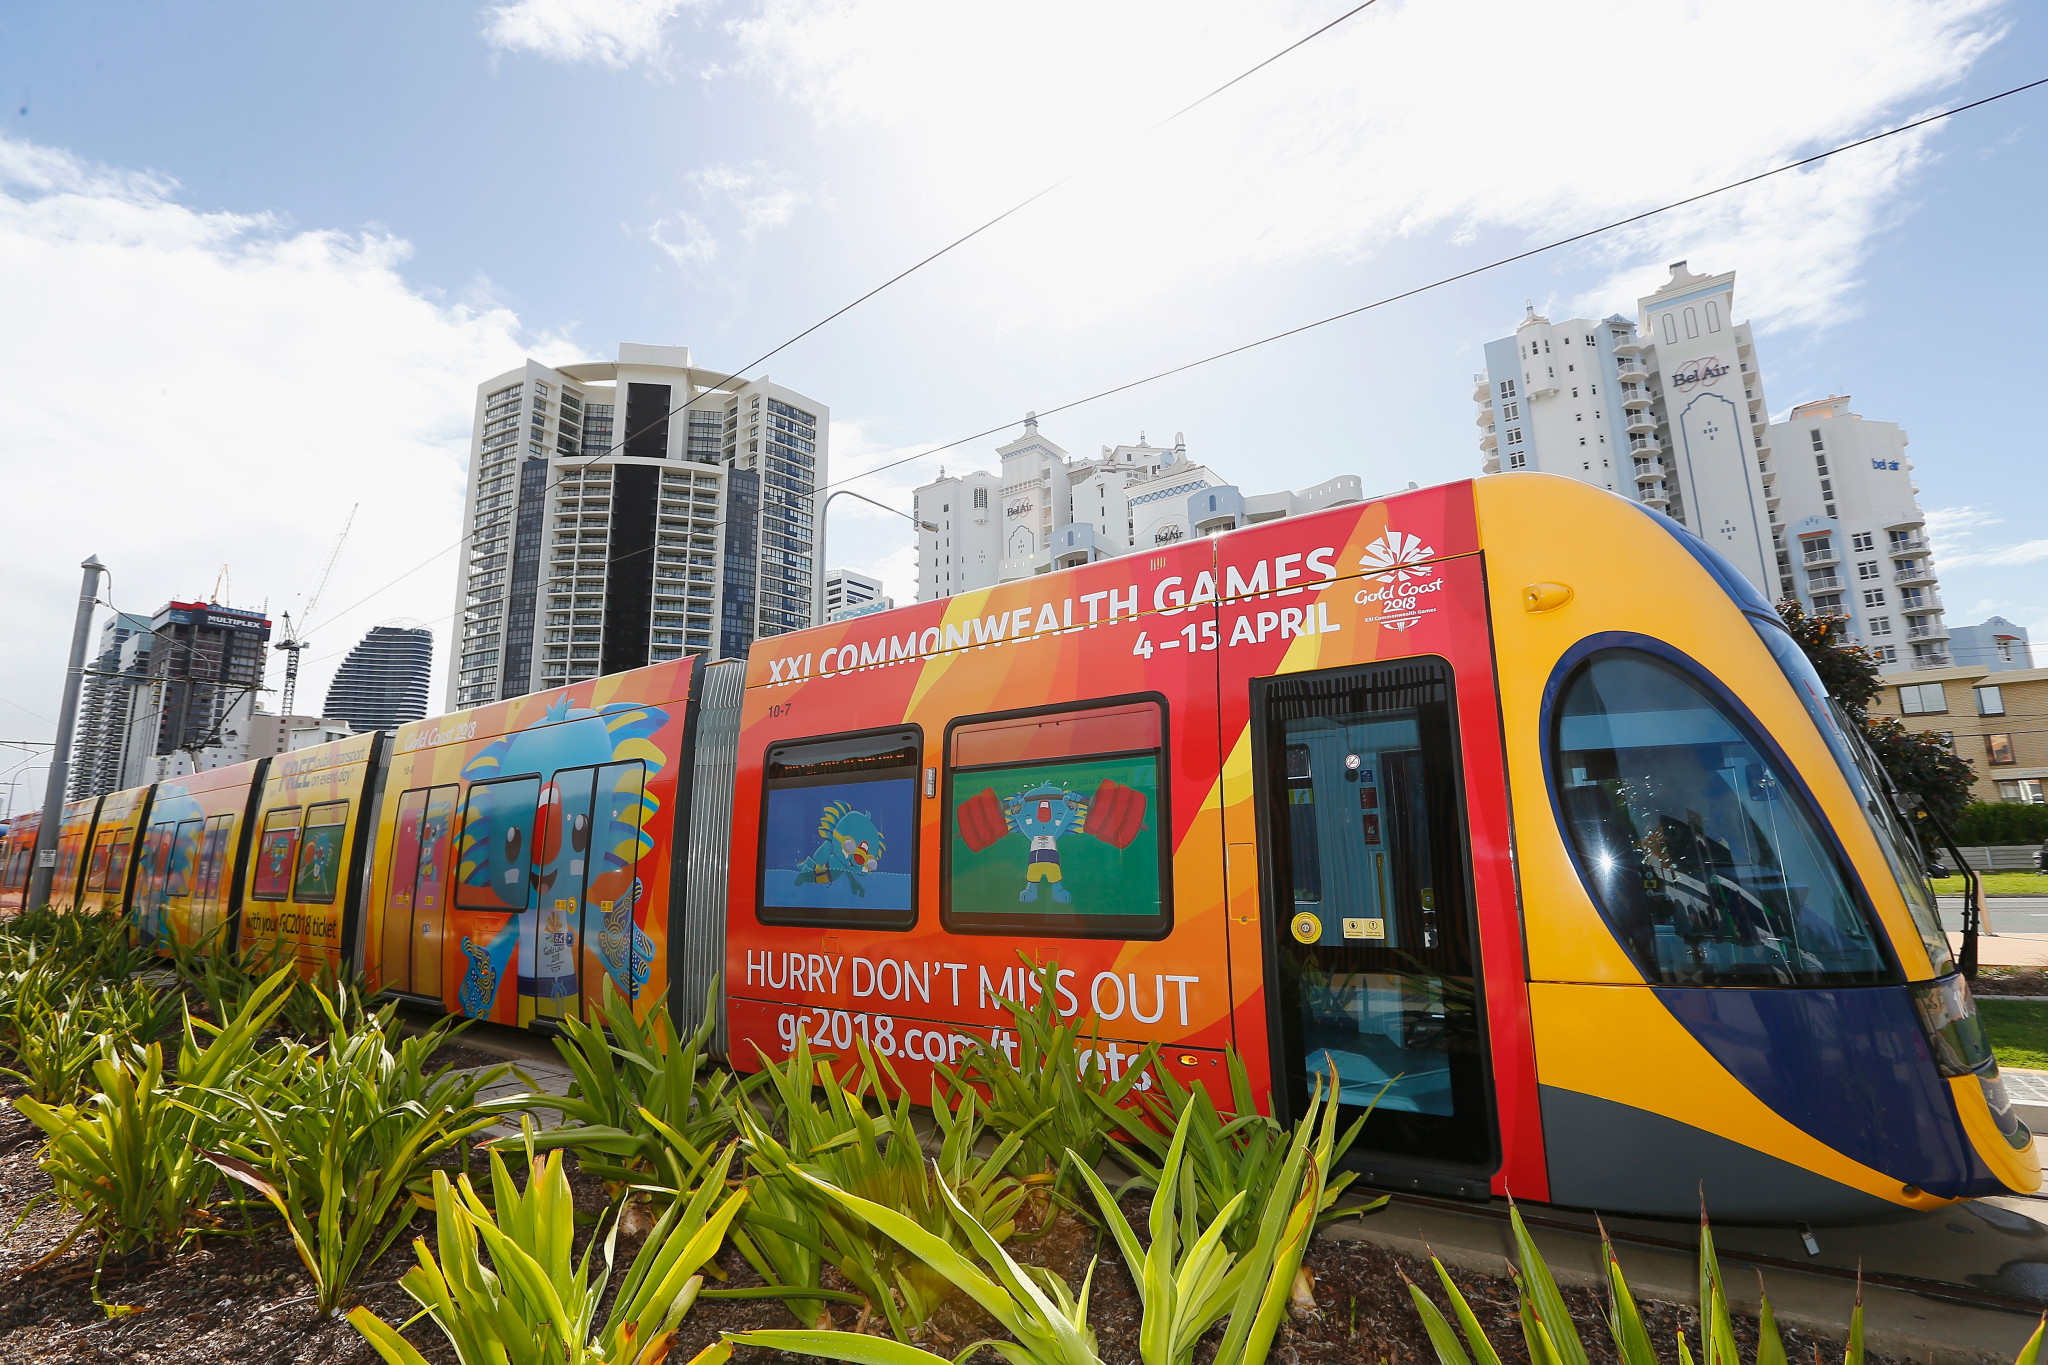 Gold Coast 2018 are steering the public towards public transport at the Games to avoid traffic ©Getty Images